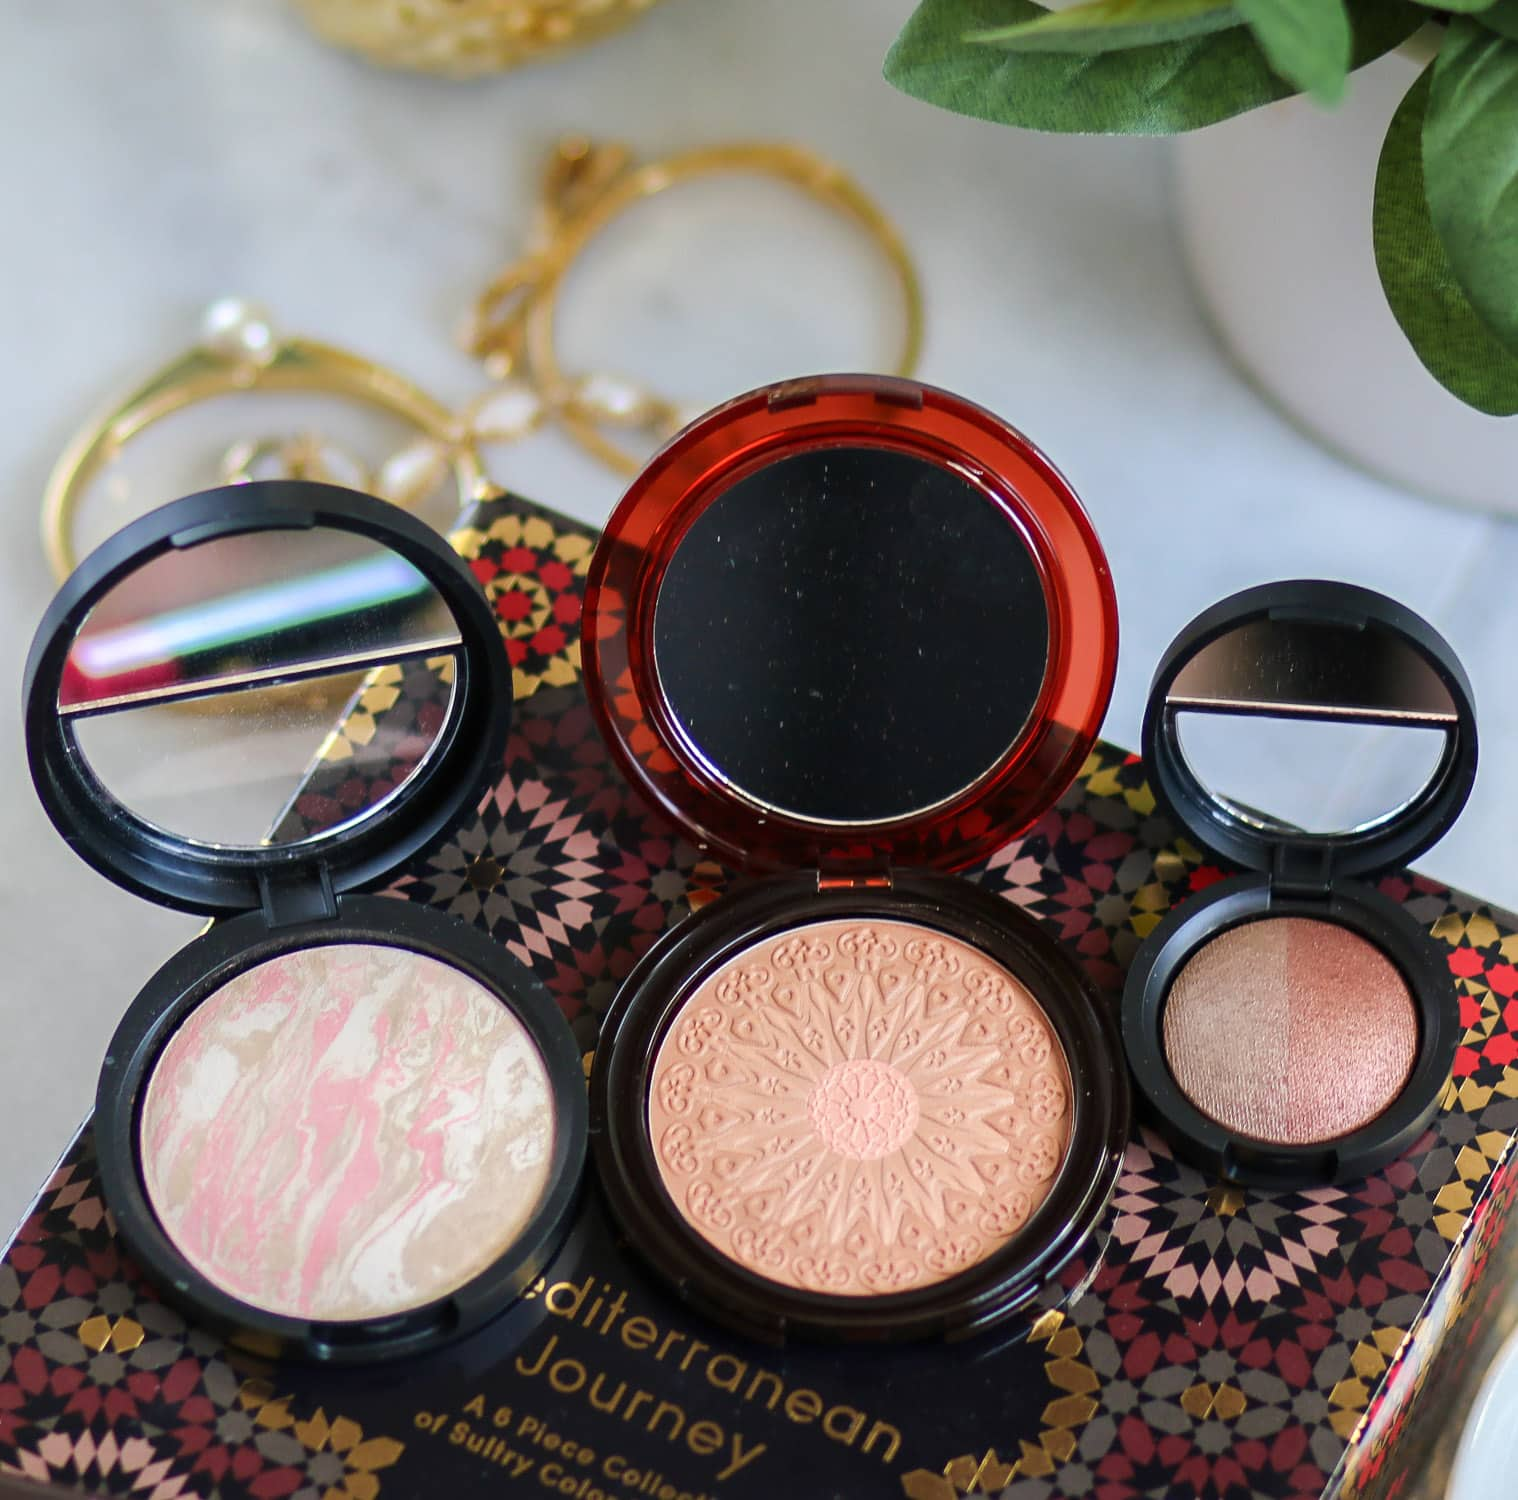 0e07716e90d1 The Laura Geller Mediterranean Journey Collection is so beautiful! The kit  includes Baked Balance-